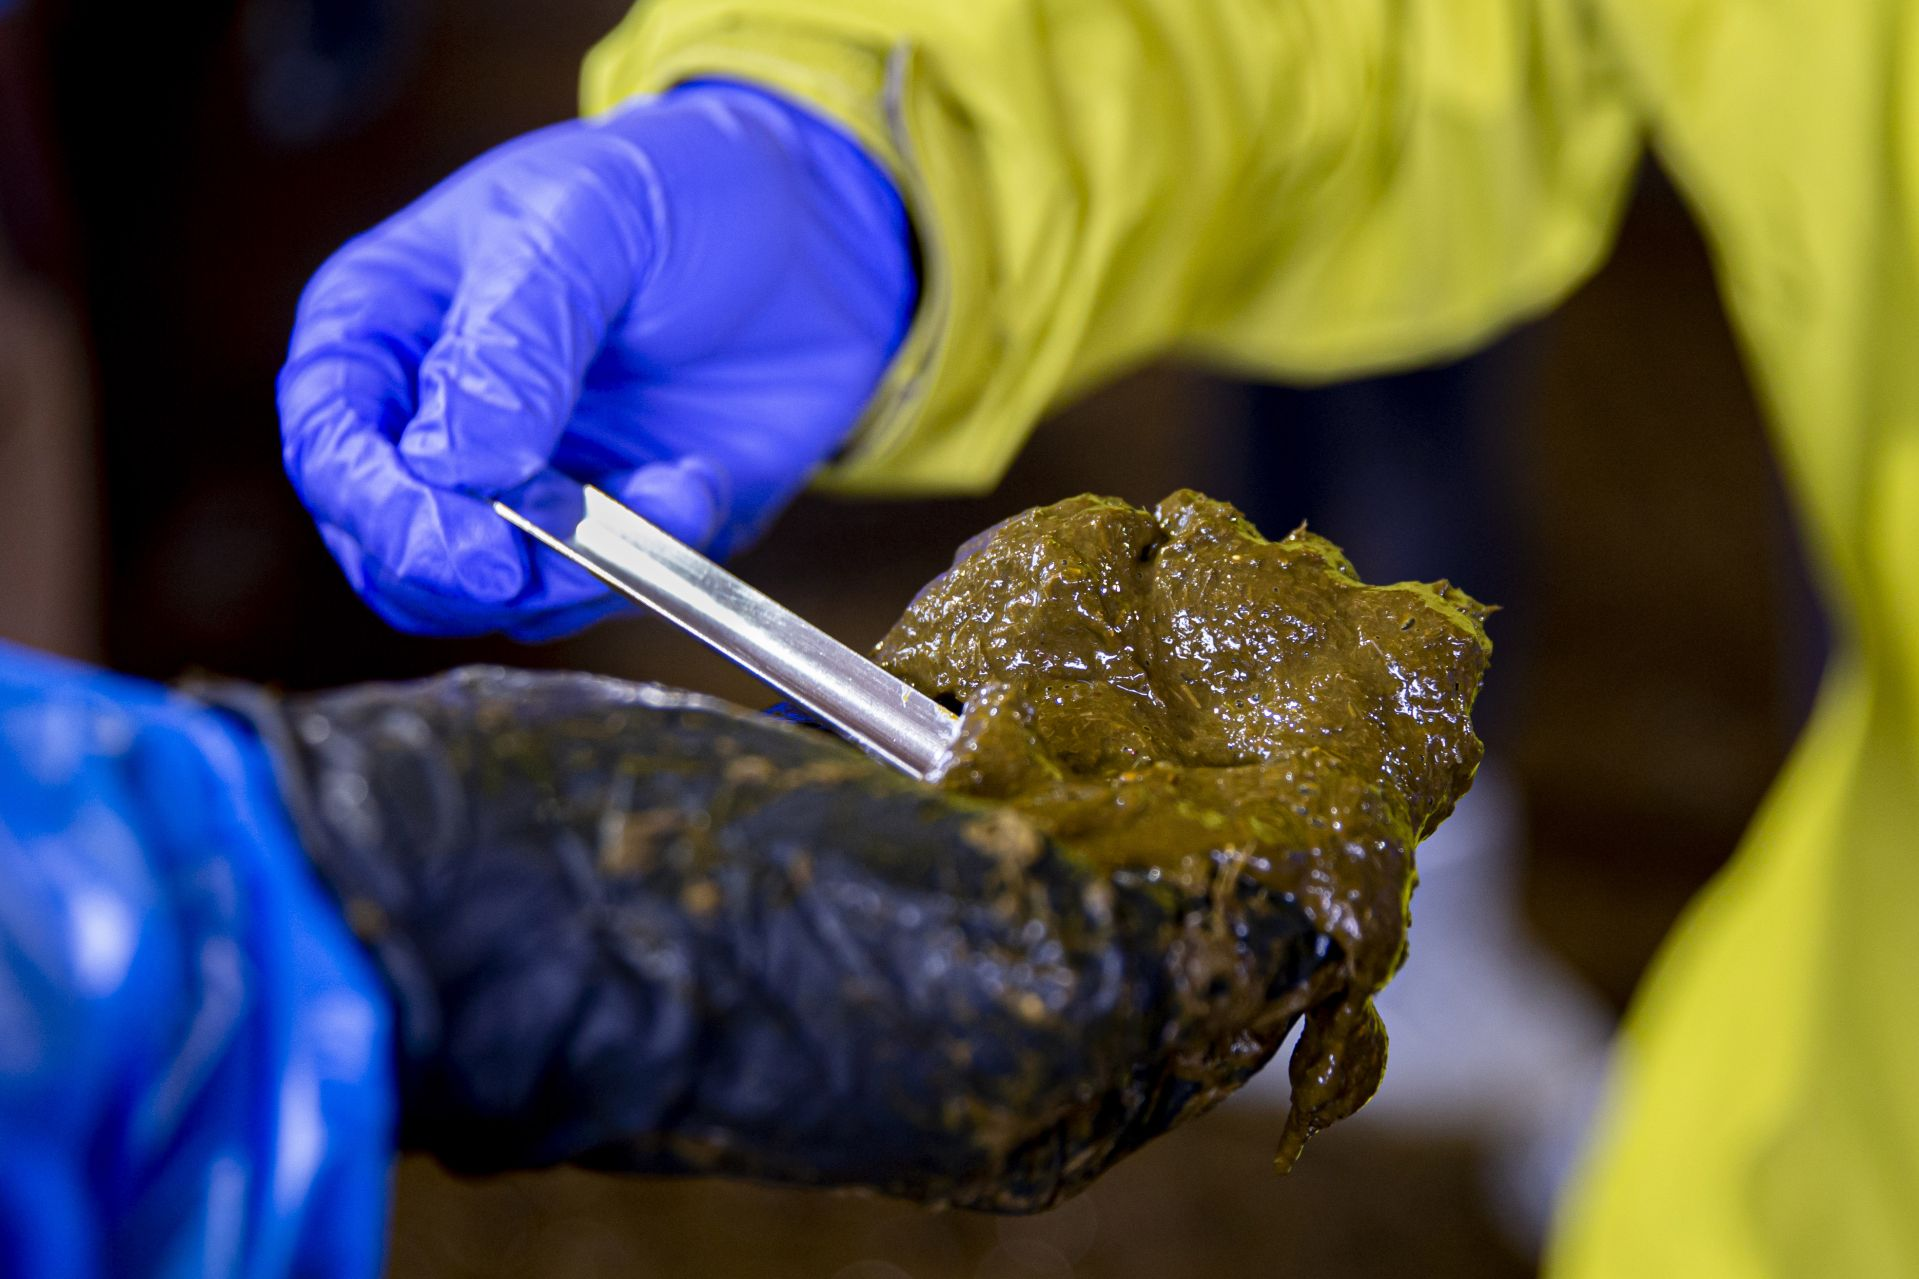 After fecal matter is taken from the cow's rectum, a steel laboratory scoop is used to select a portion for sampling. (Phyllis Graber Jensen/Bates College)